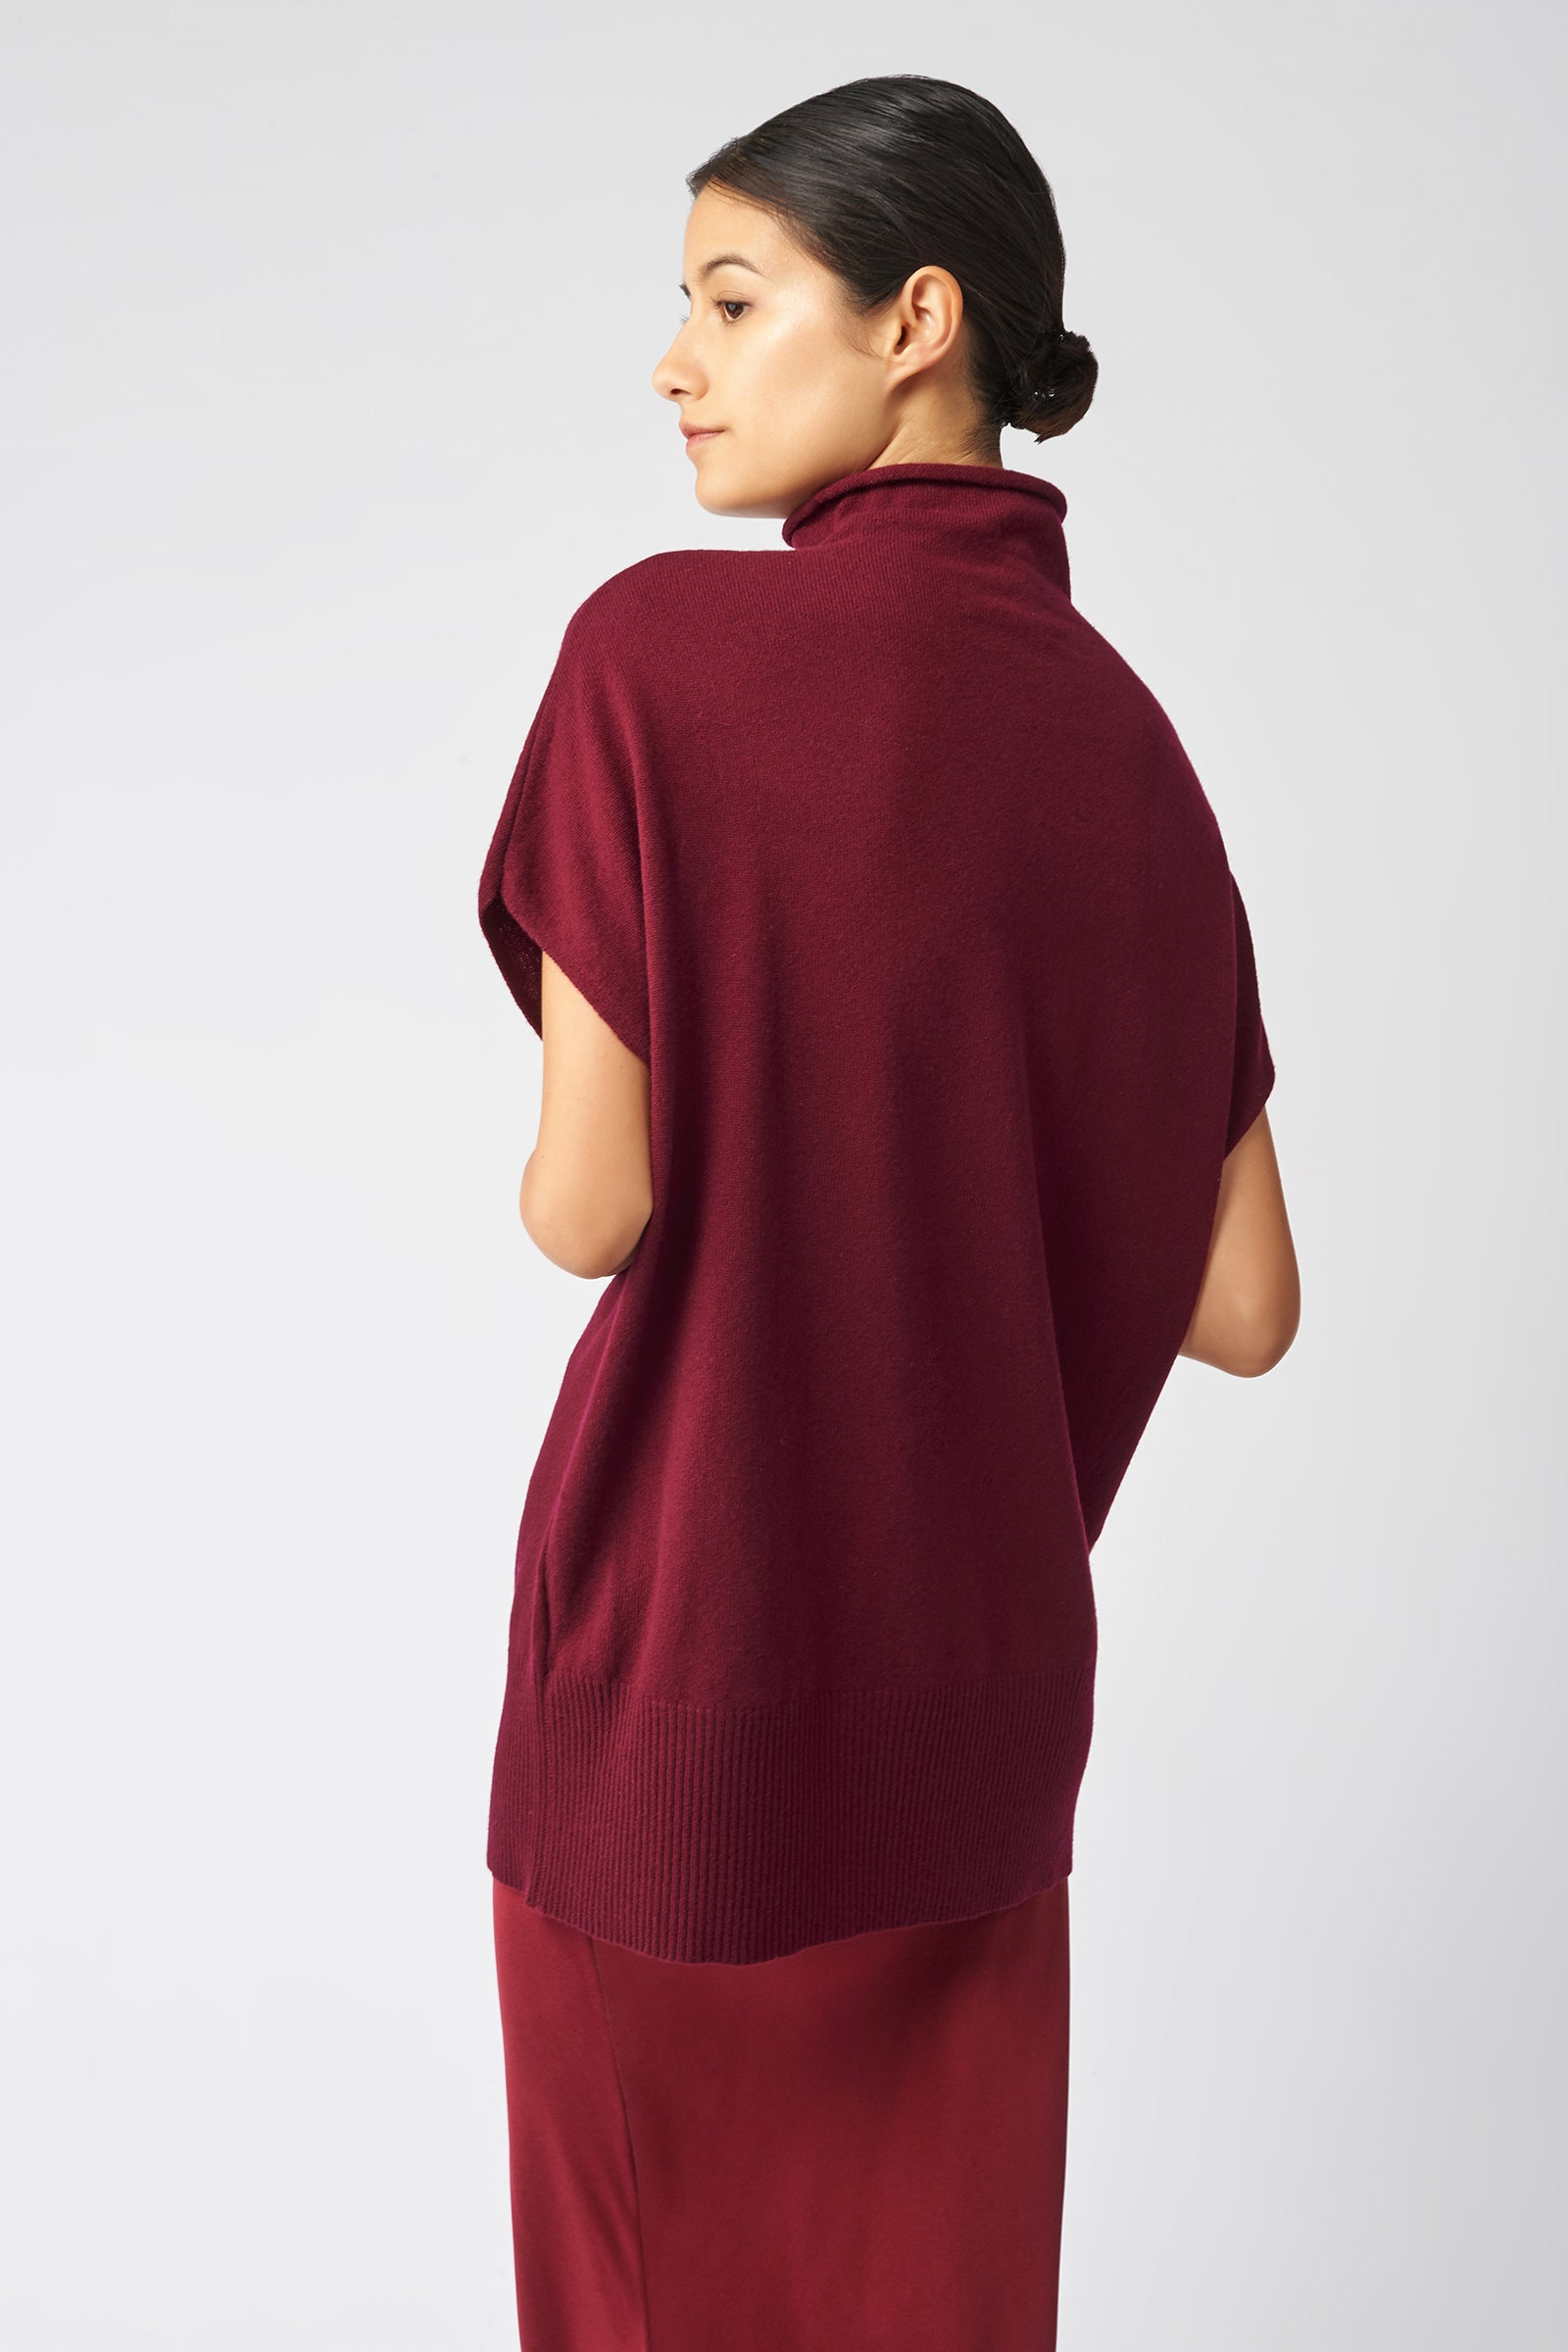 Kal Rieman Cashmere Funnelneck in Bordeaux on Model Back View